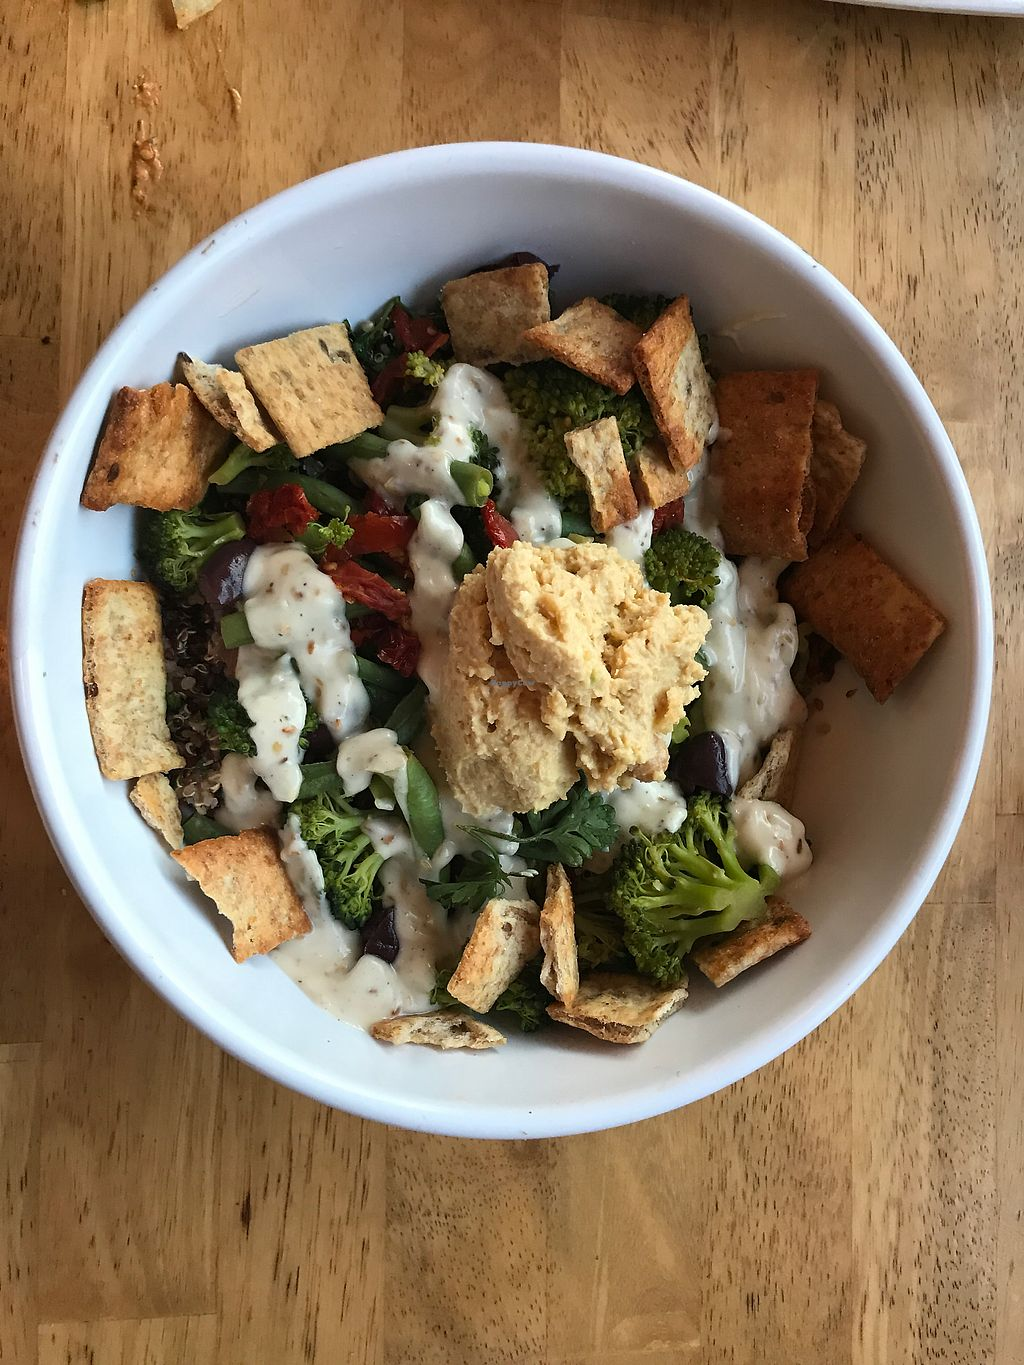 "Photo of Ahimsa Vegan Cafe  by <a href=""/members/profile/Bex2017"">Bex2017</a> <br/>Mediterranean Bowl  <br/> October 1, 2017  - <a href='/contact/abuse/image/44909/310611'>Report</a>"